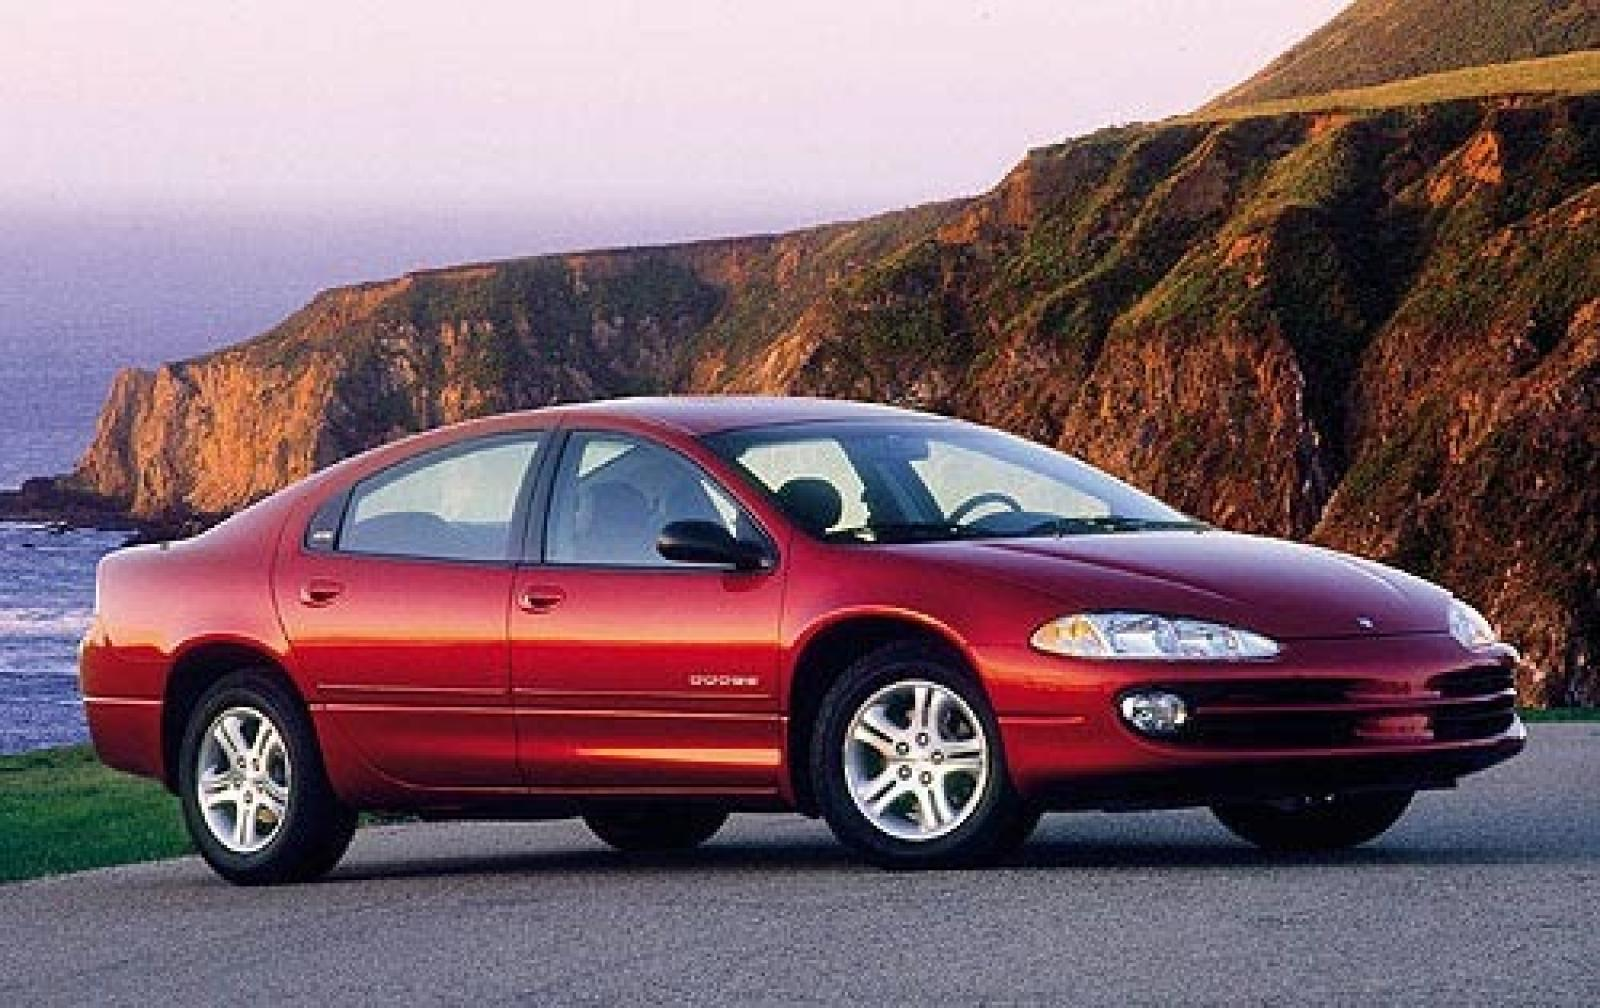 2000 dodge intrepid information and photos zombiedrive. Black Bedroom Furniture Sets. Home Design Ideas